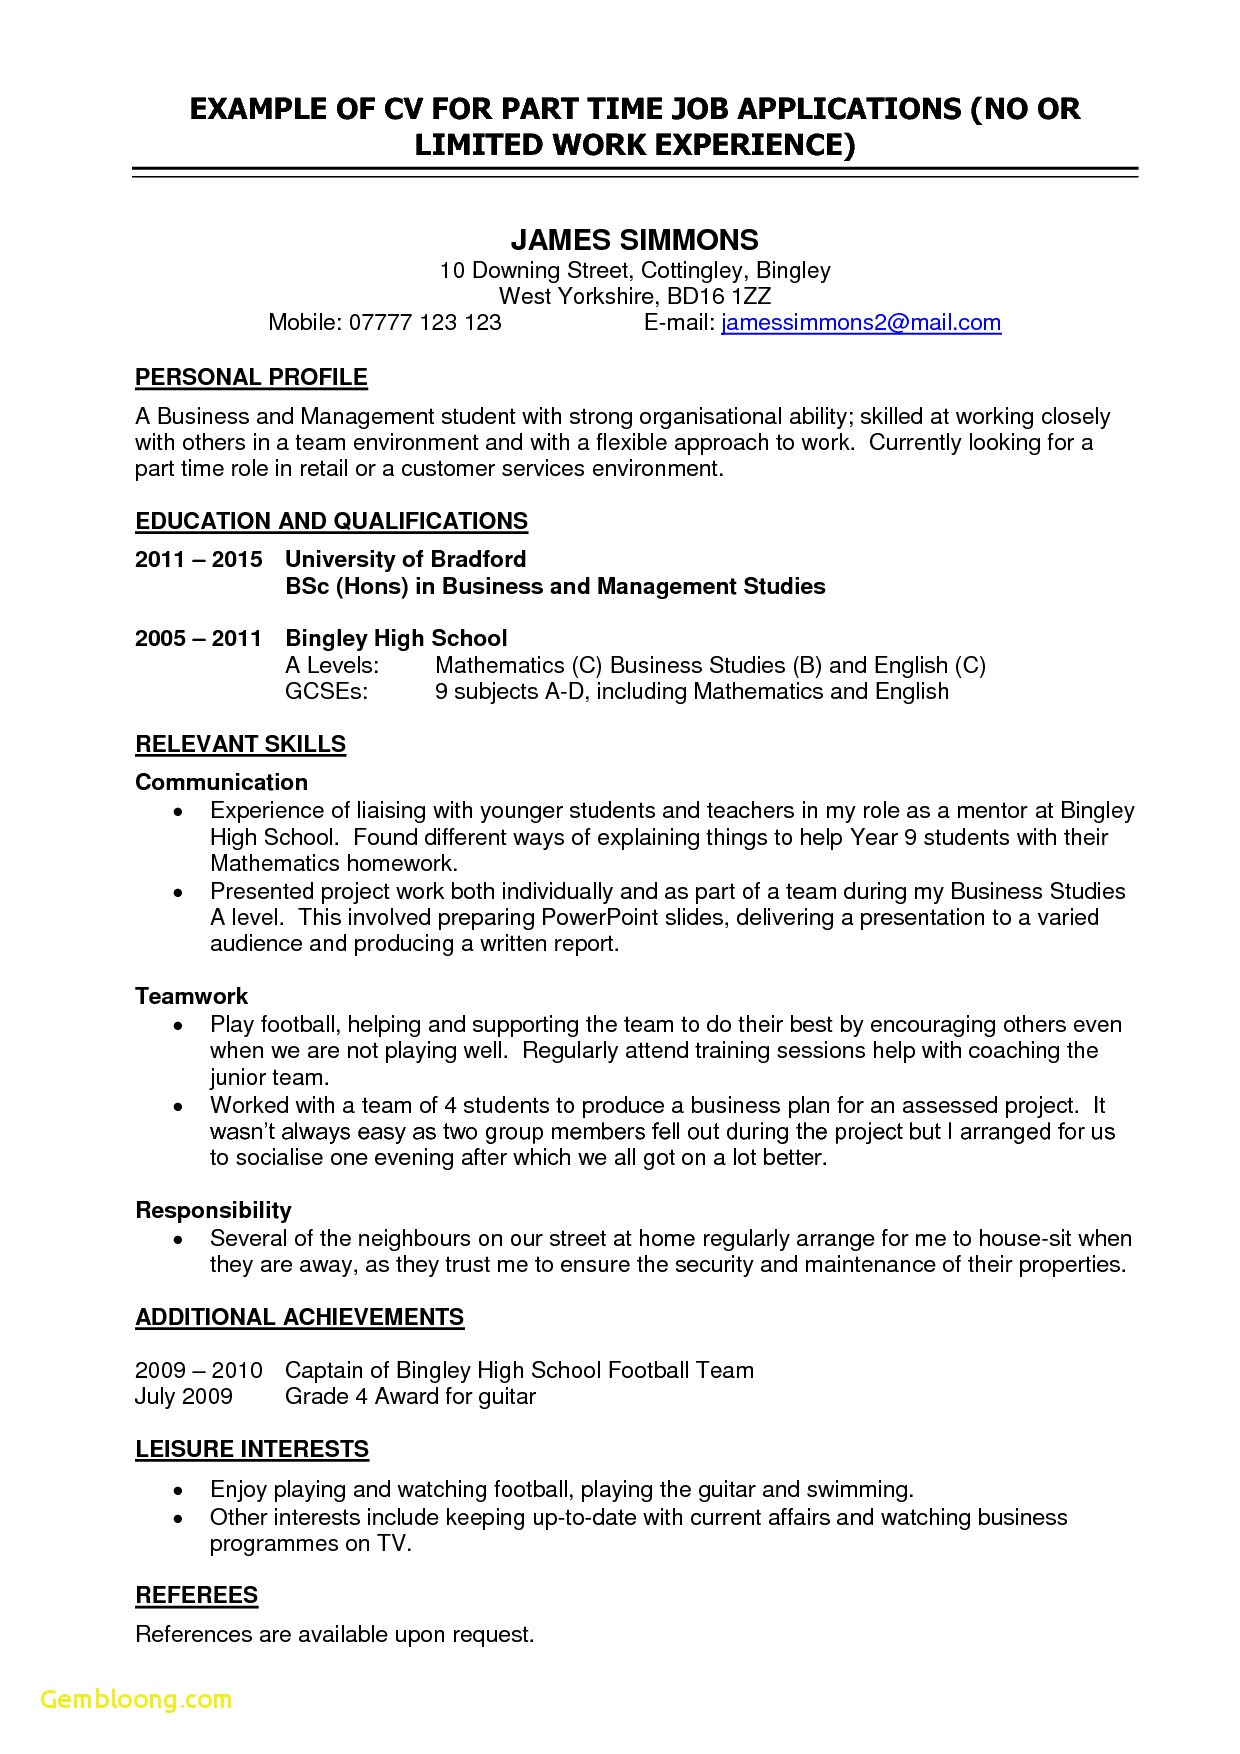 College Application Cover Letter Template - College Resume Templates Resume Outline Examples Unique Od